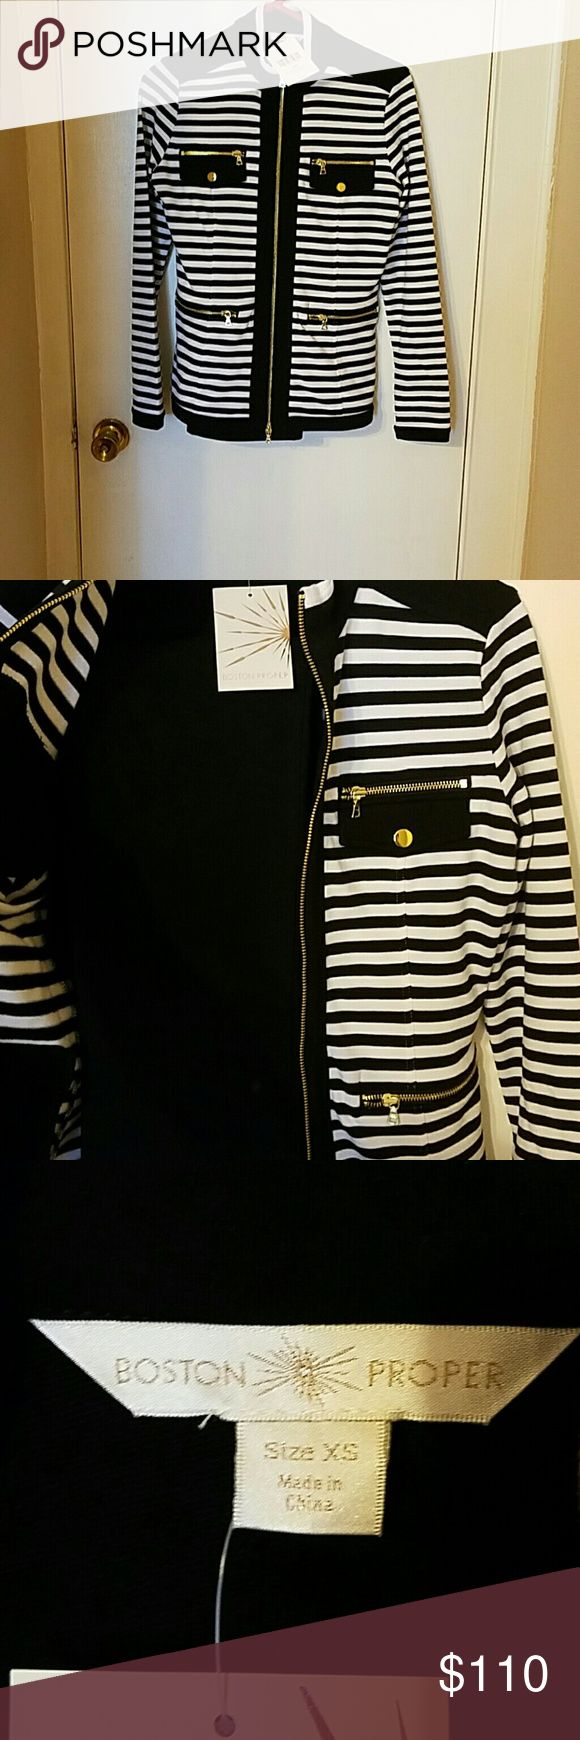 Boston proper black and white coordinates Size XS New with tags. Jacket ( black and white )and black pants. Gold accents. Size XS Boston Proper Other